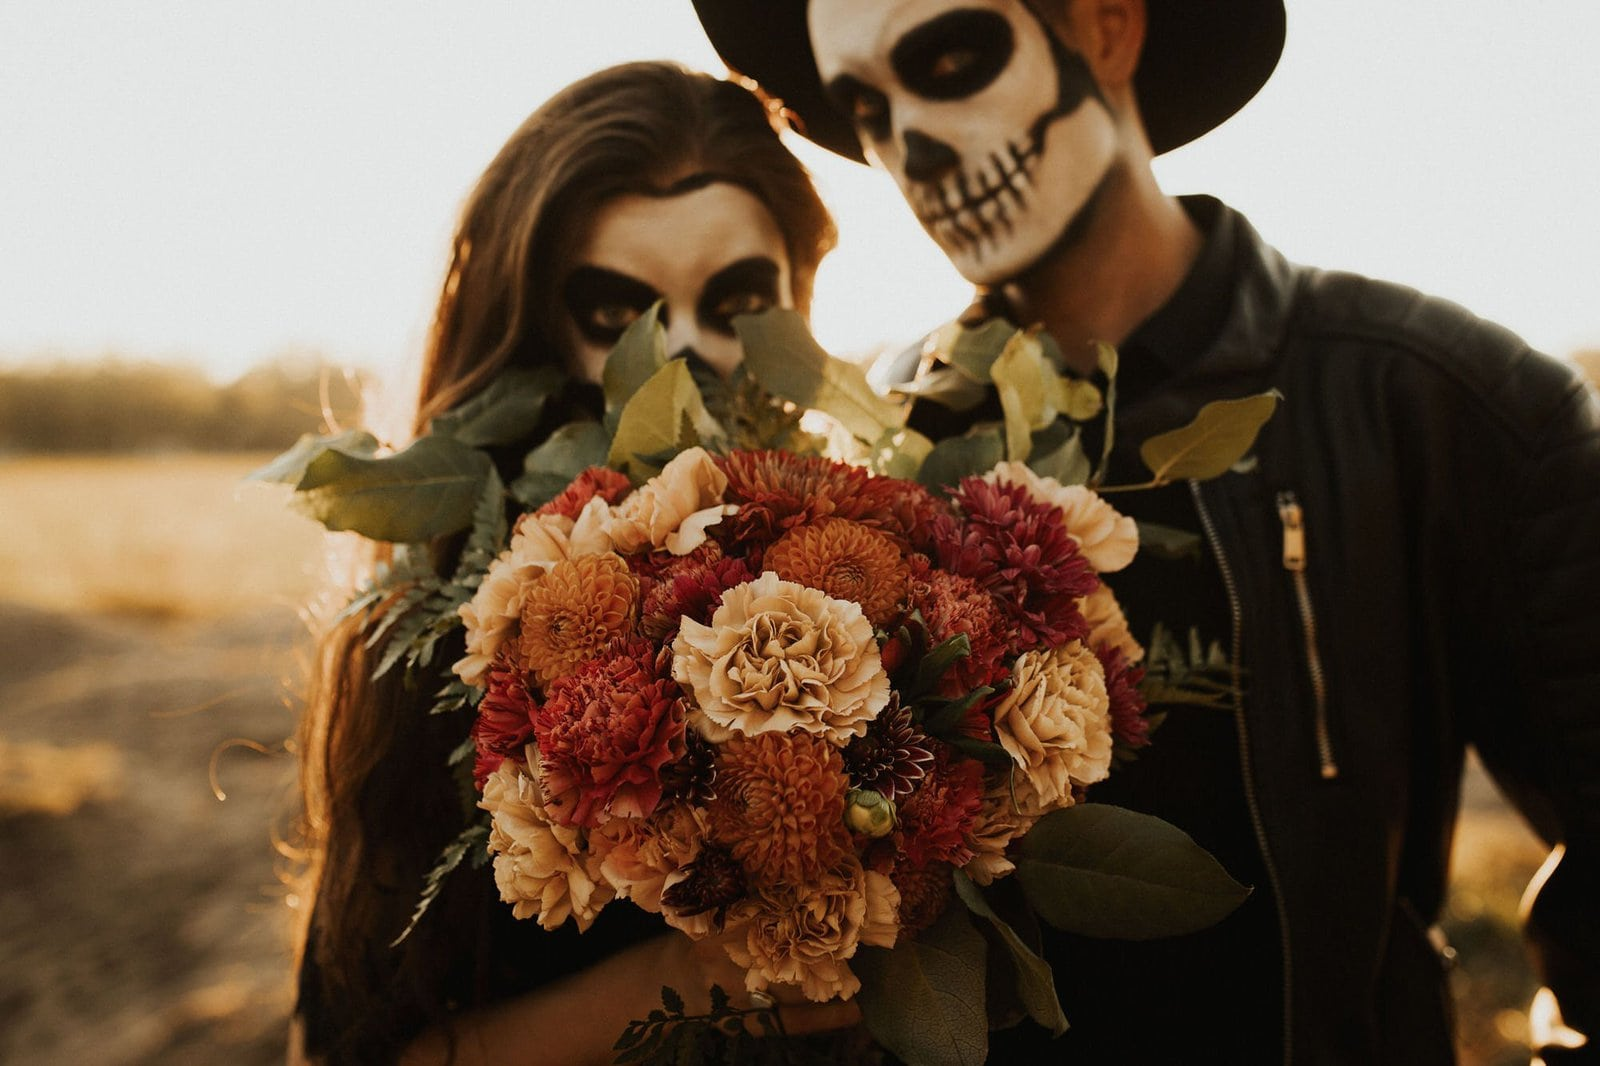 Bridal bouquet for Halloween.